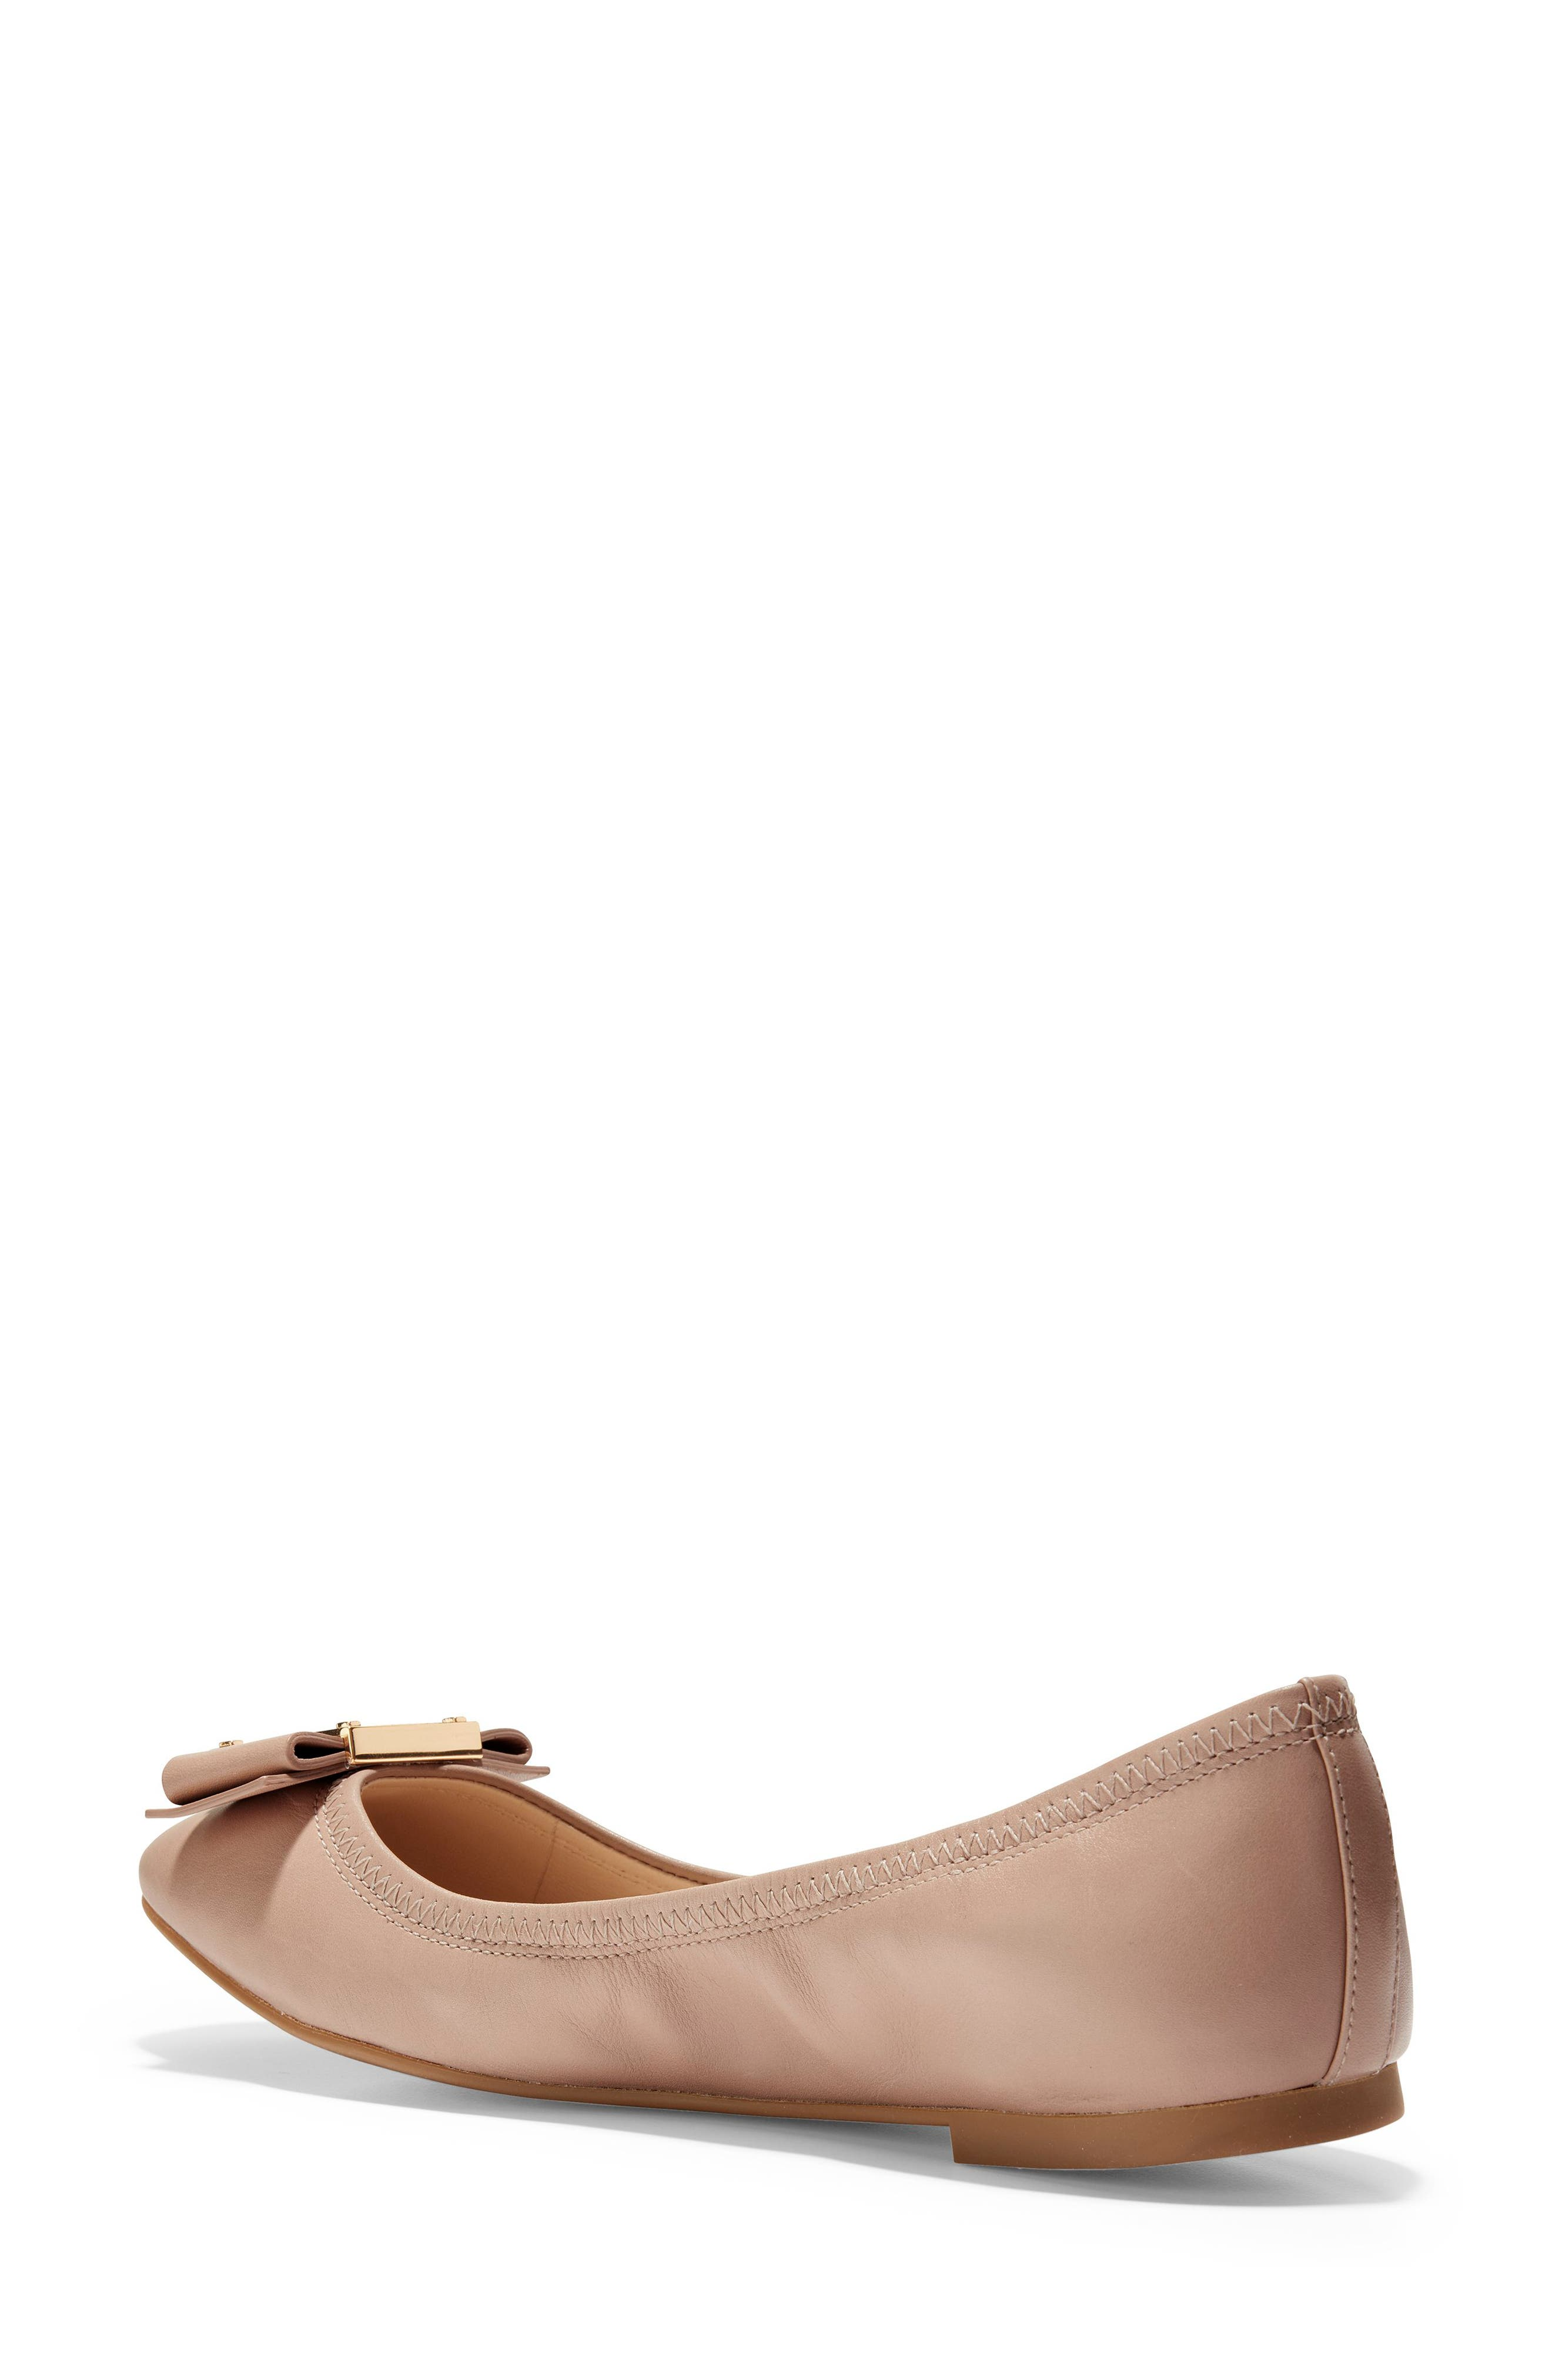 Tali Modern Bow Ballet Flat,                             Alternate thumbnail 2, color,                             Nude Leather